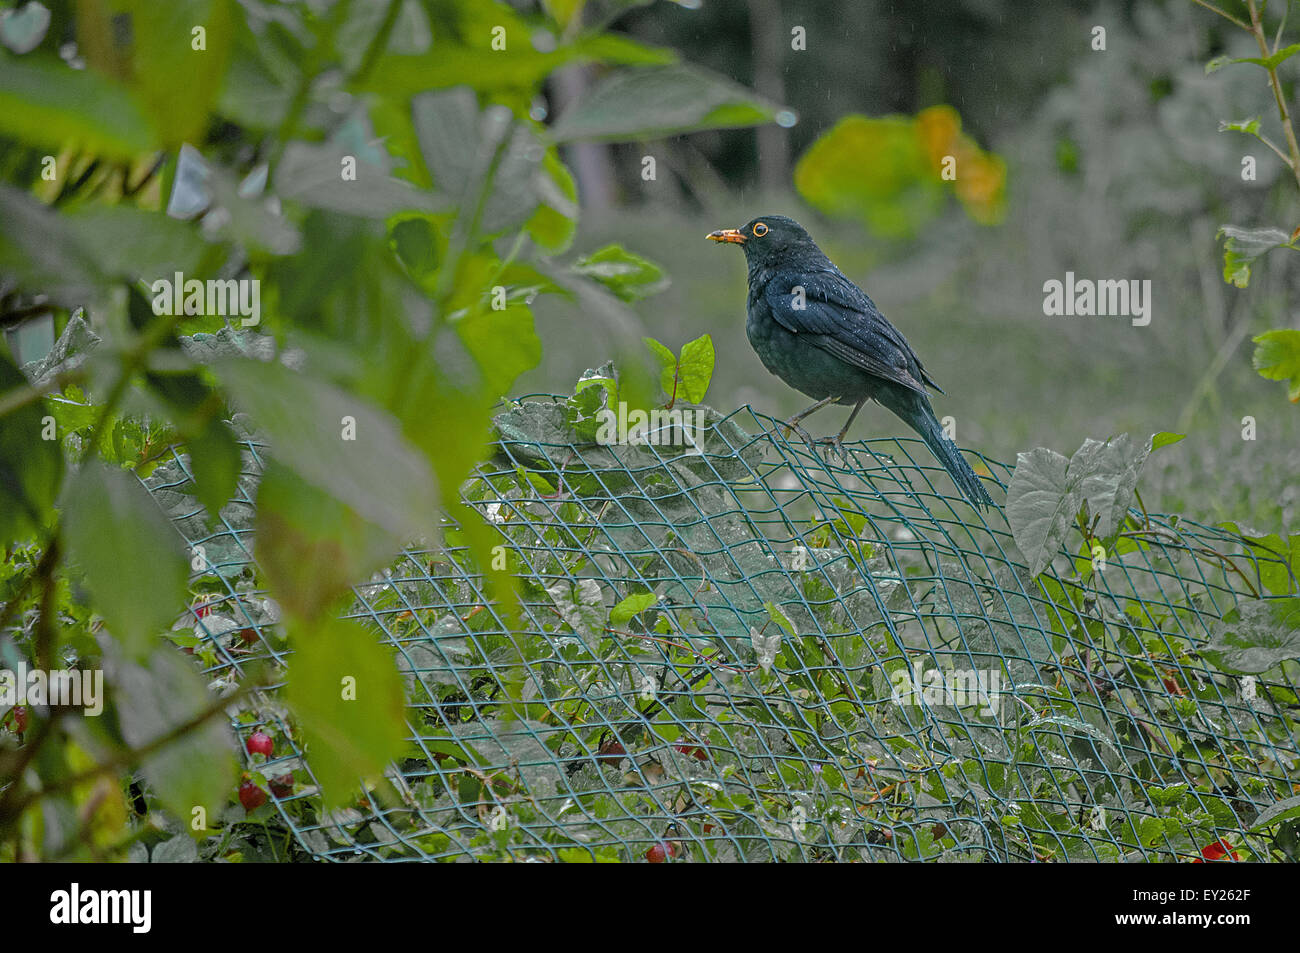 A blackbird perches on some wire mesh - Stock Image